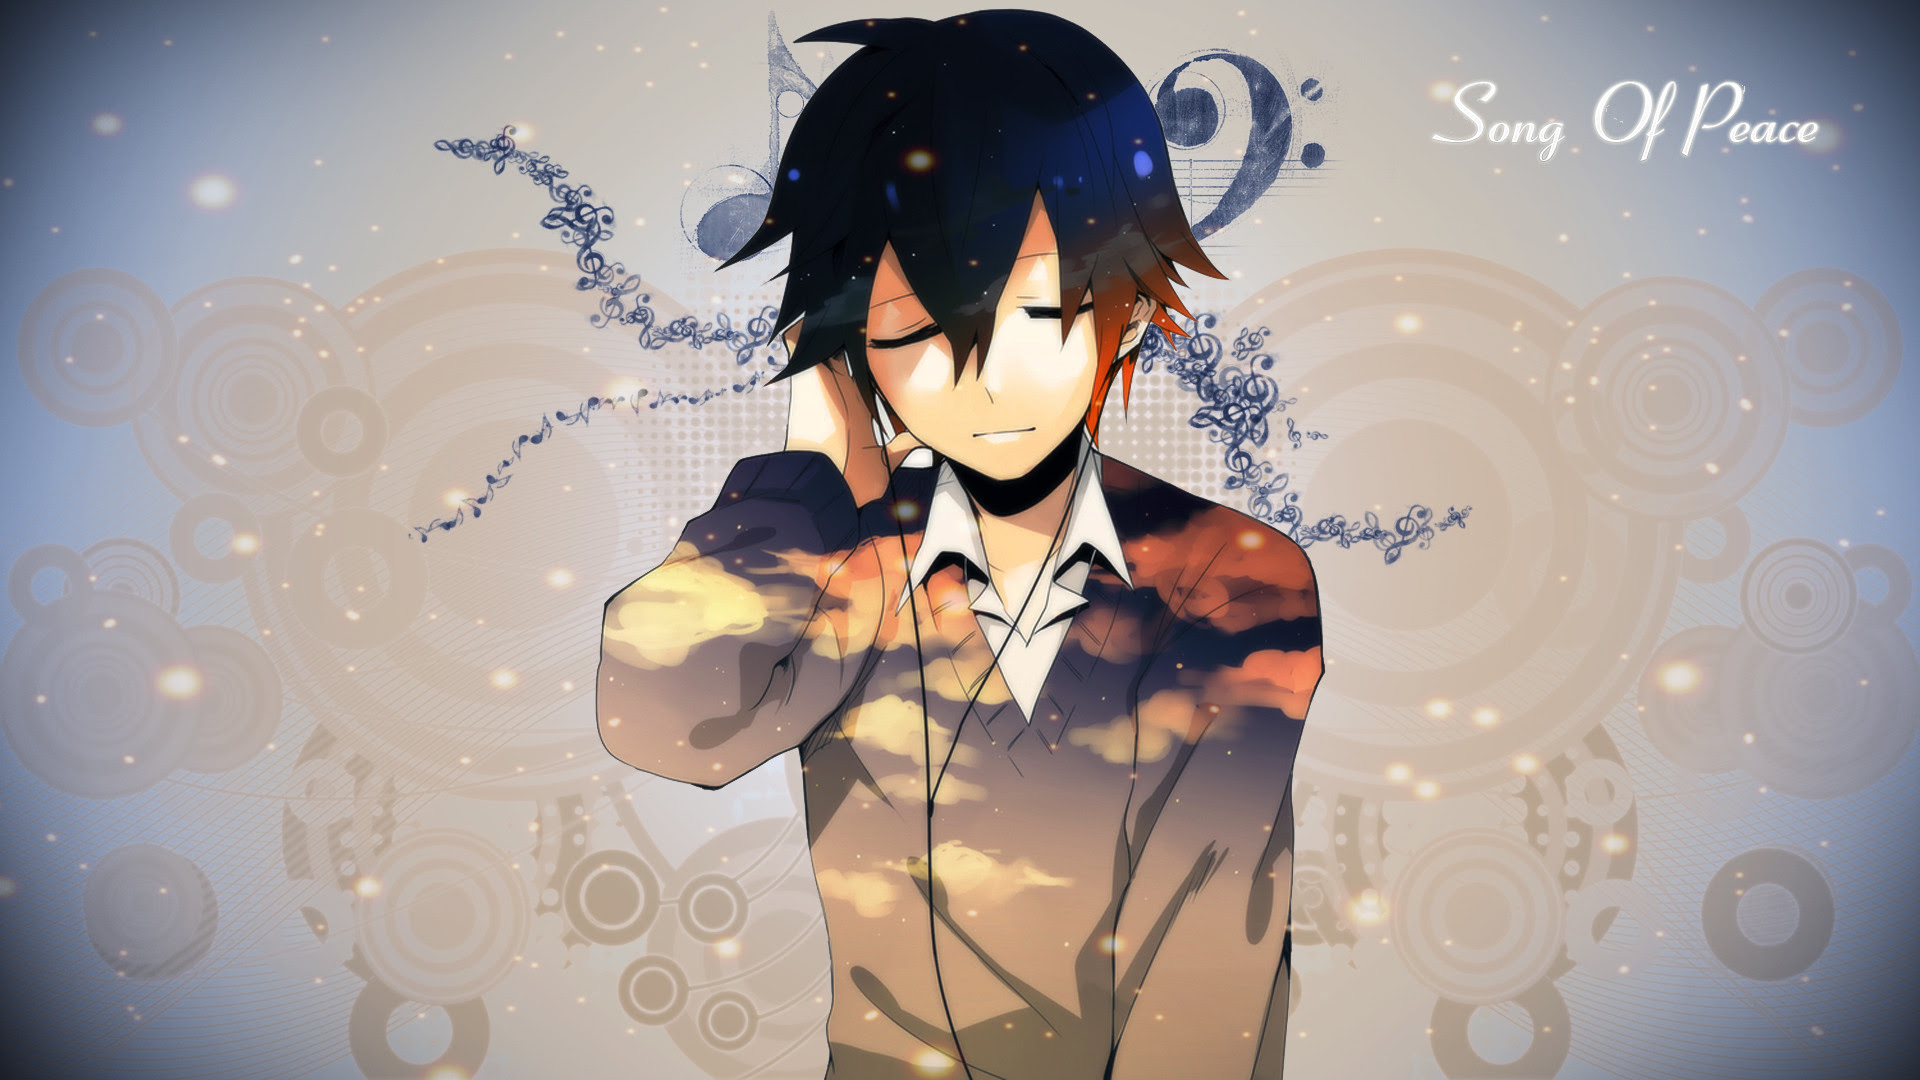 Anime Music Wallpaper 77 Images Images, Photos, Reviews